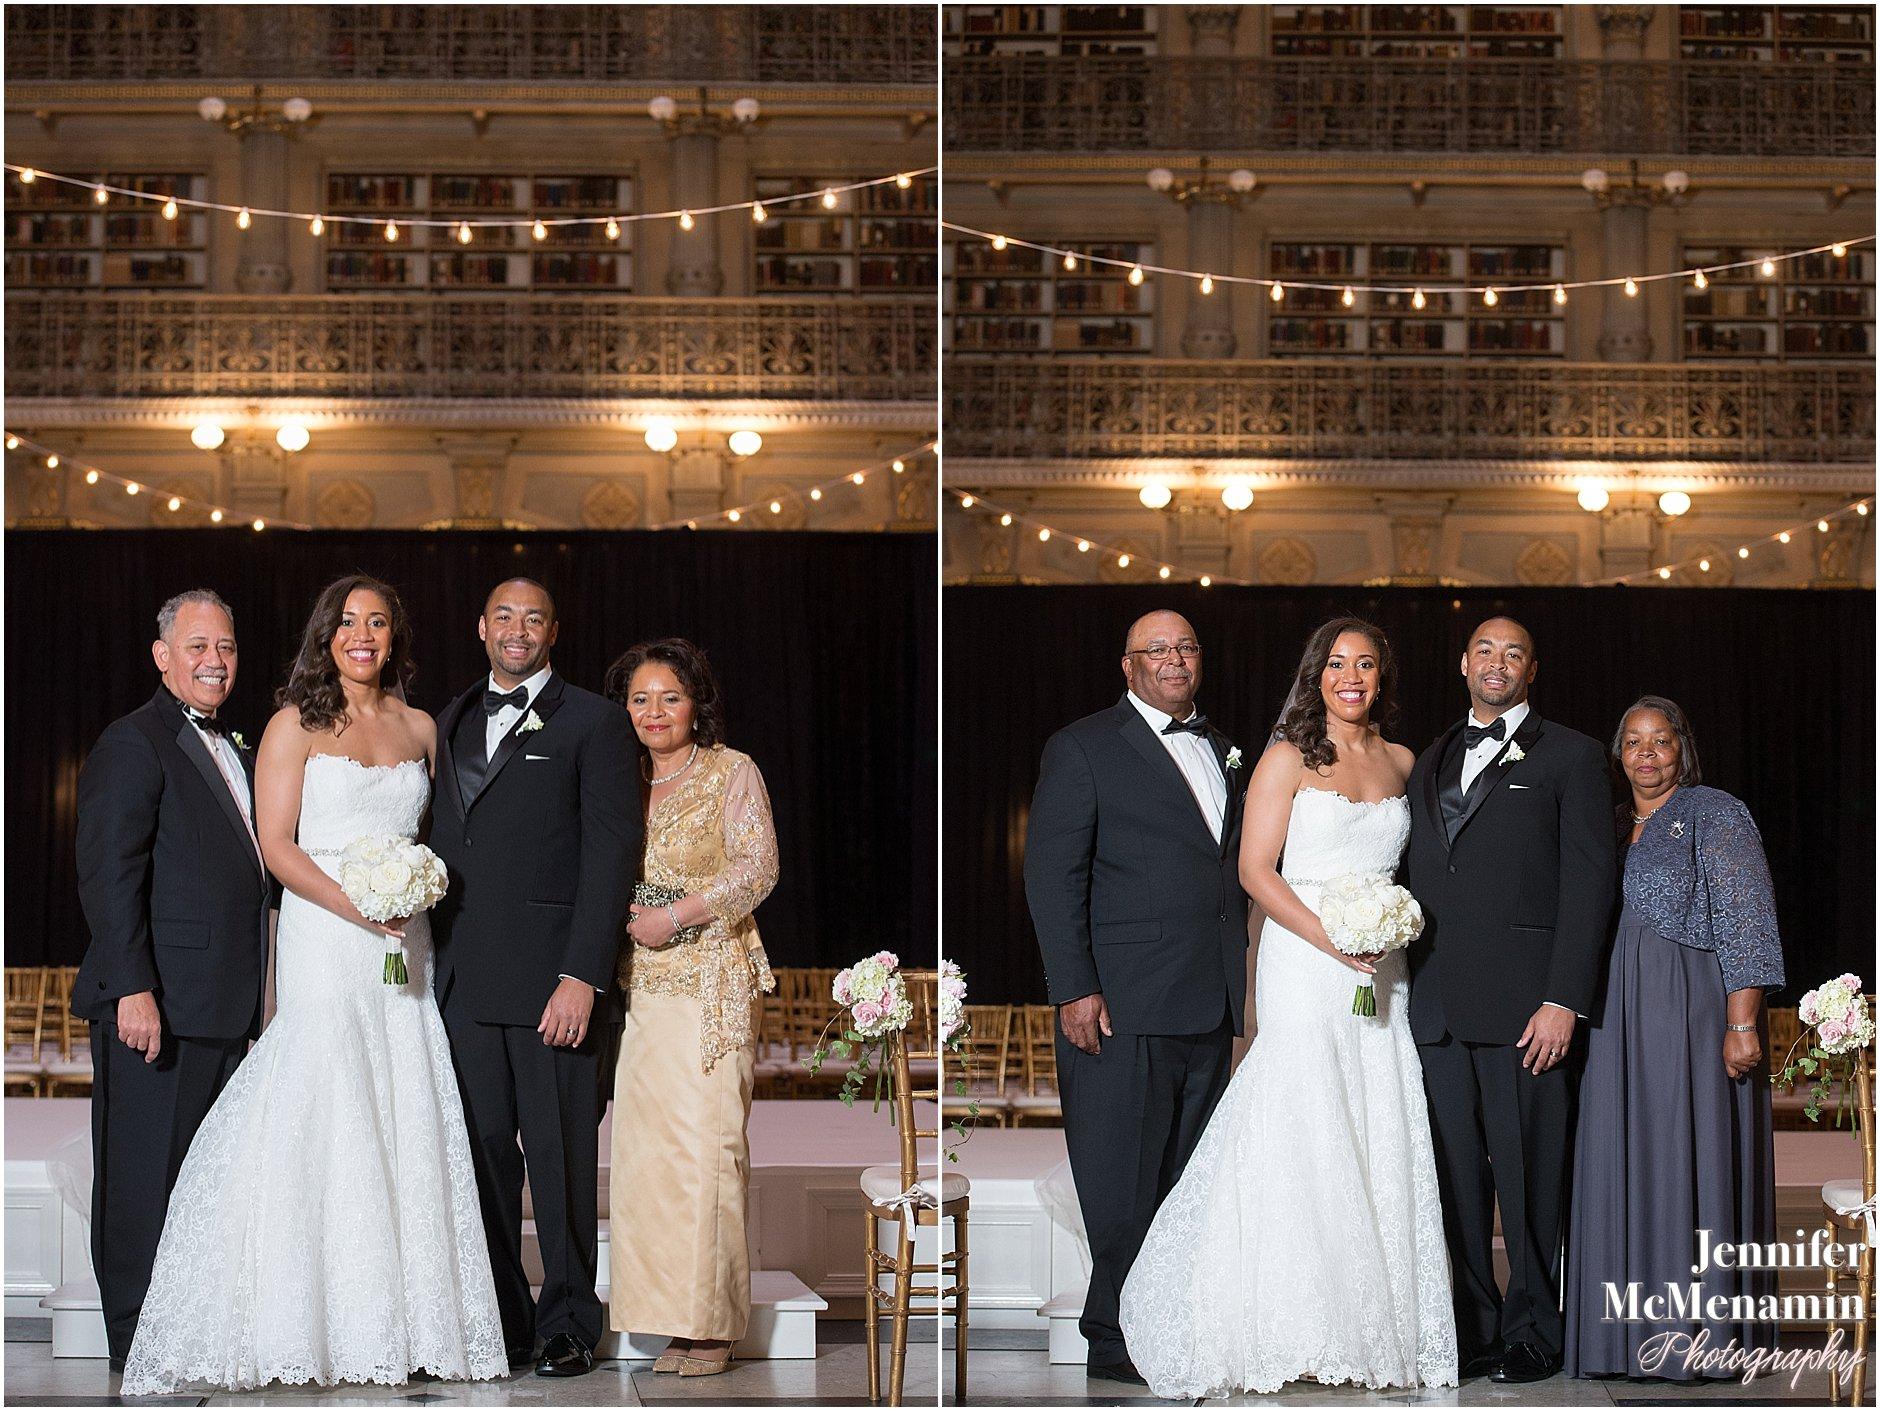 053-Peabody-Library-Wedding_WilsonPatterson_02103-0431_Jennifer-McMenamin-Photography